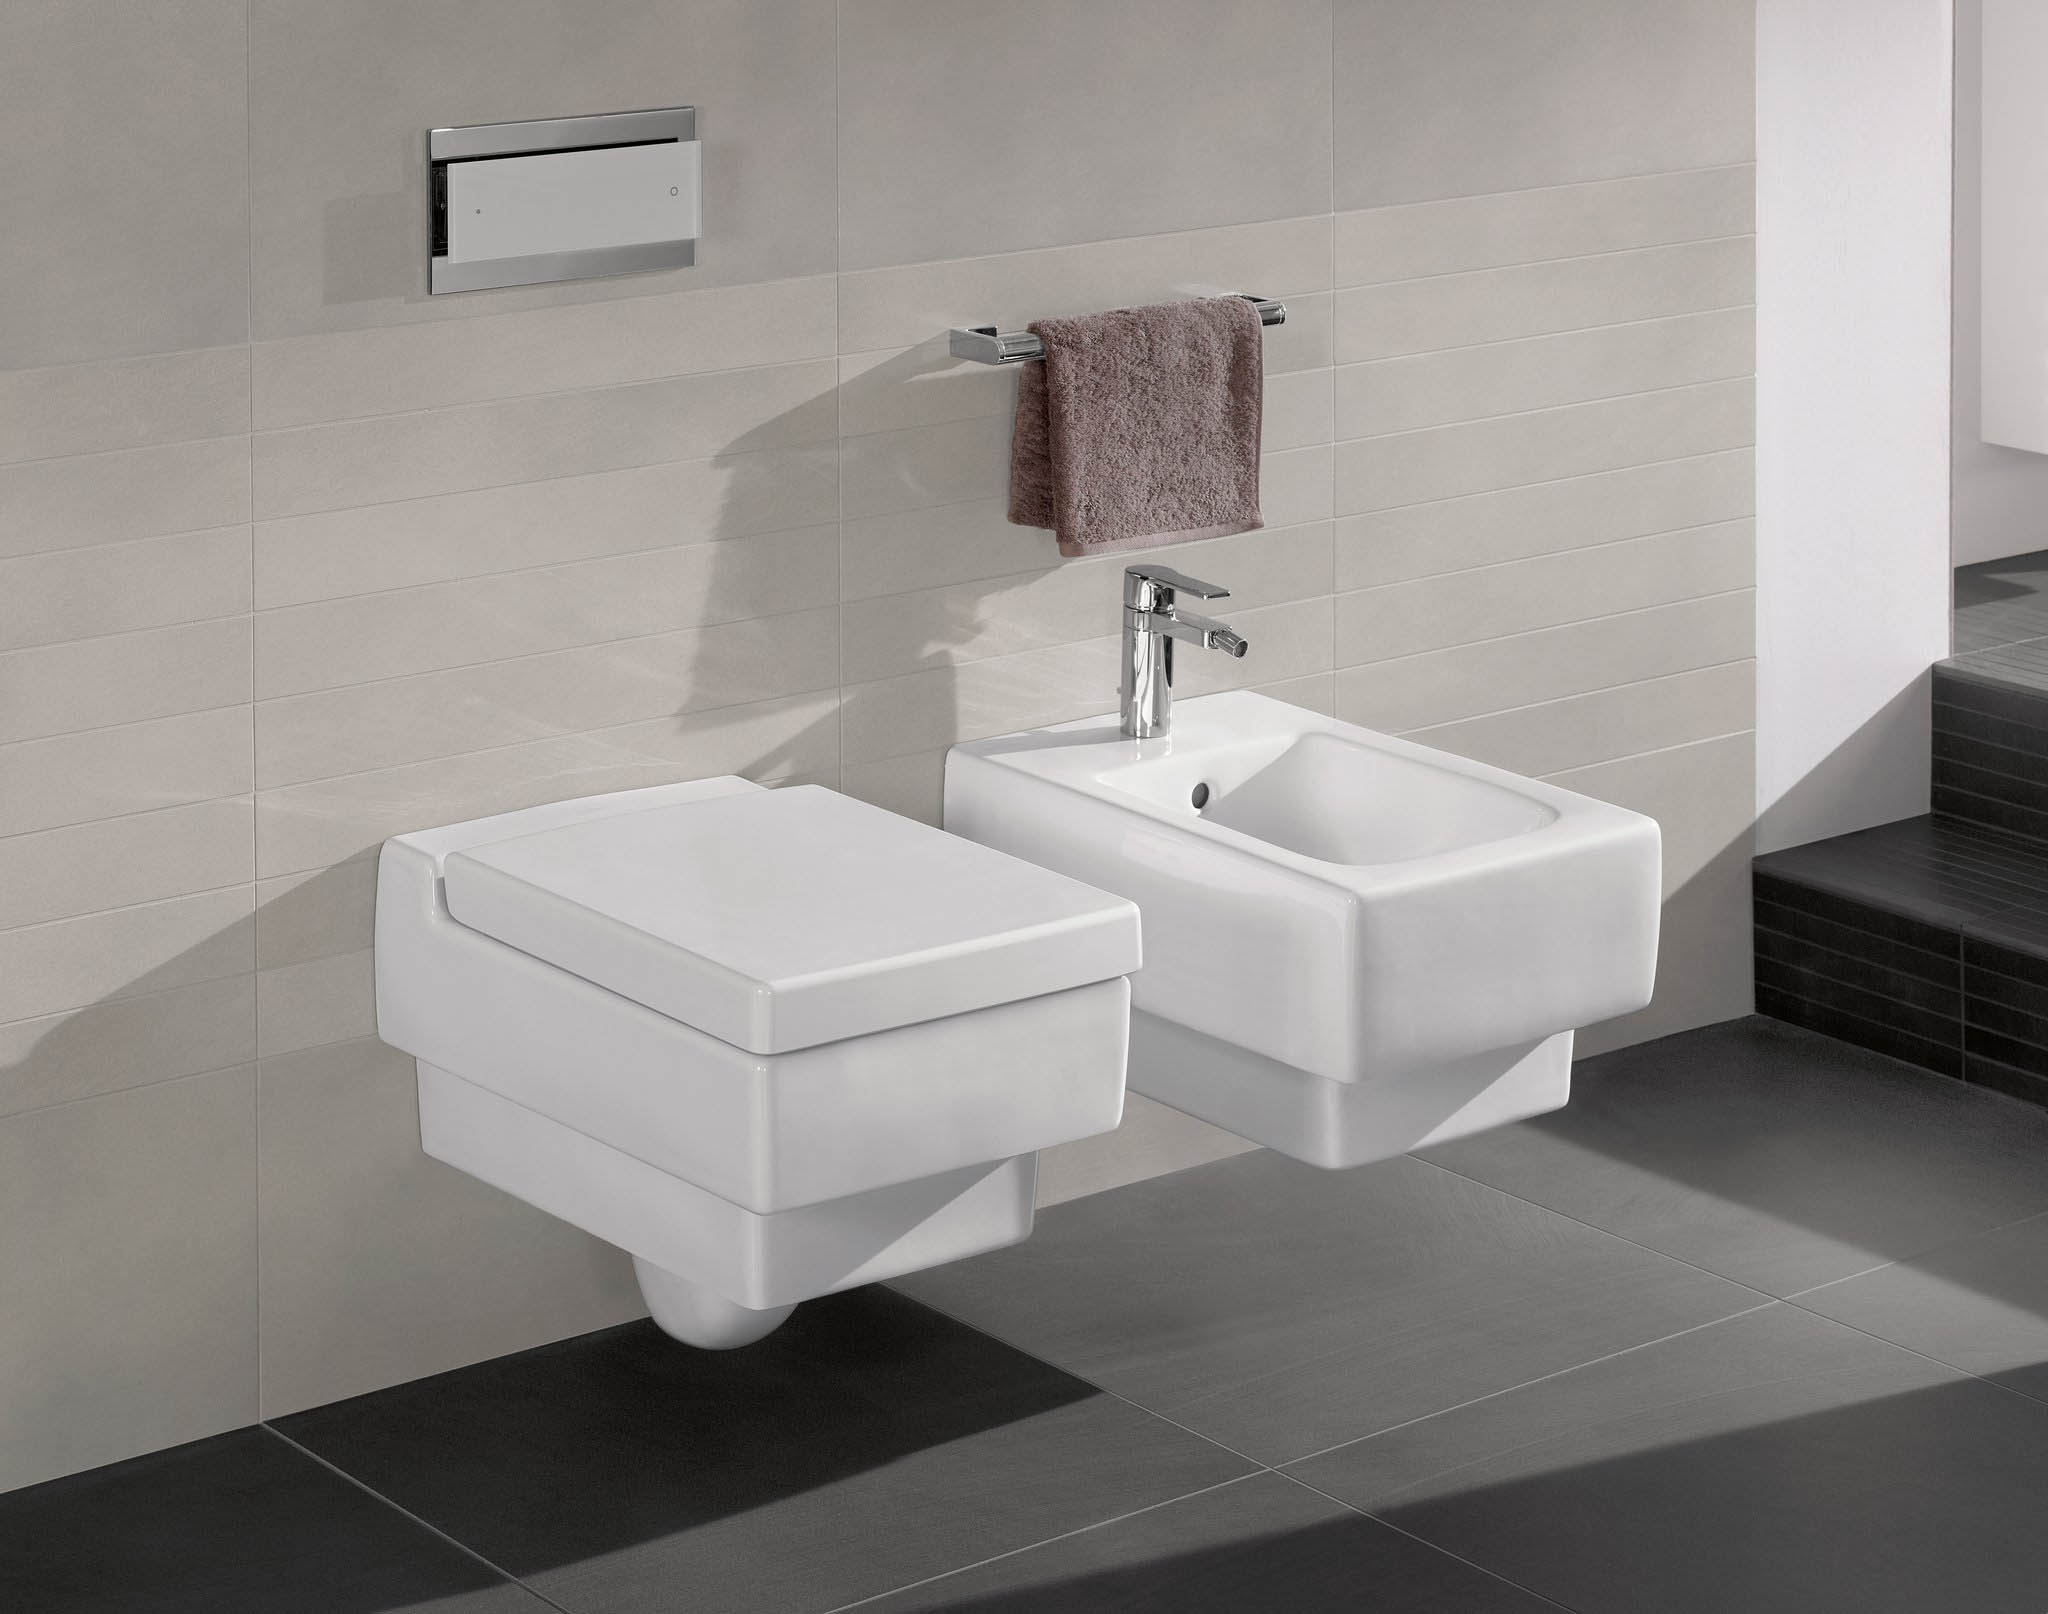 matching square bidet and toilet set wall mounted with electronic controls